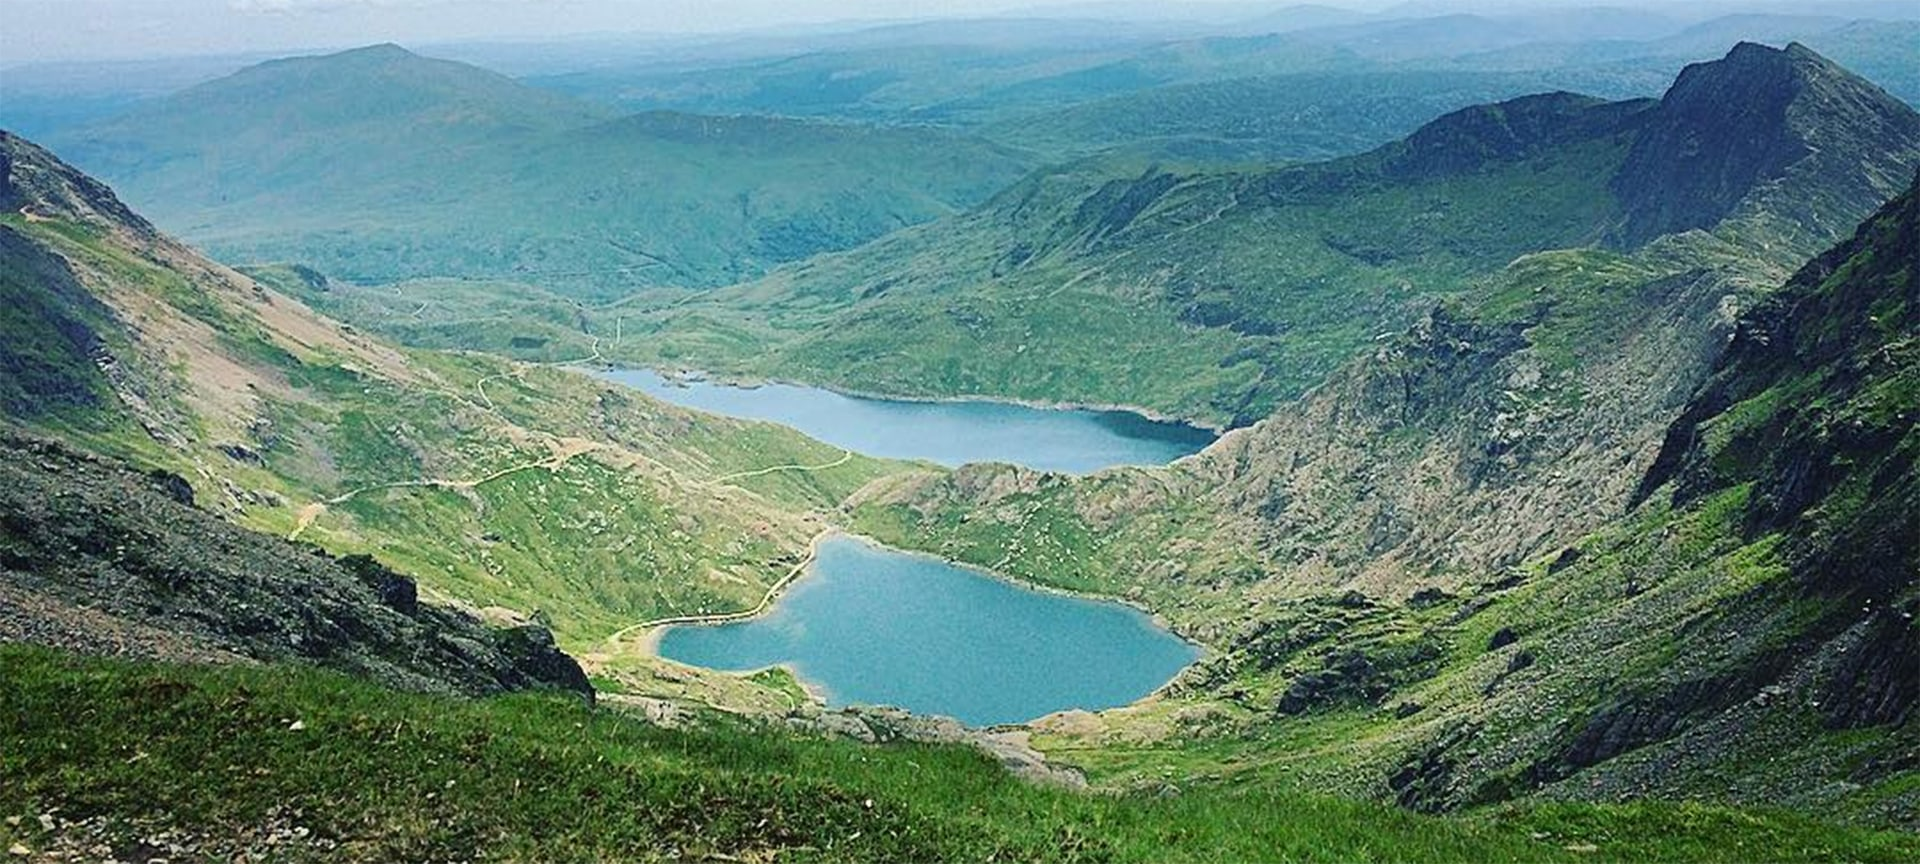 The view from the top of Mount Snowdon taking in the sight of the lake Llyn Llydaw has been named the best view in Britain. The picturesque landscape topped a poll of more than 2,500 people, beating the Three Sisters mountains in Scotland and Stonehenge in Wiltshire to the top spot.